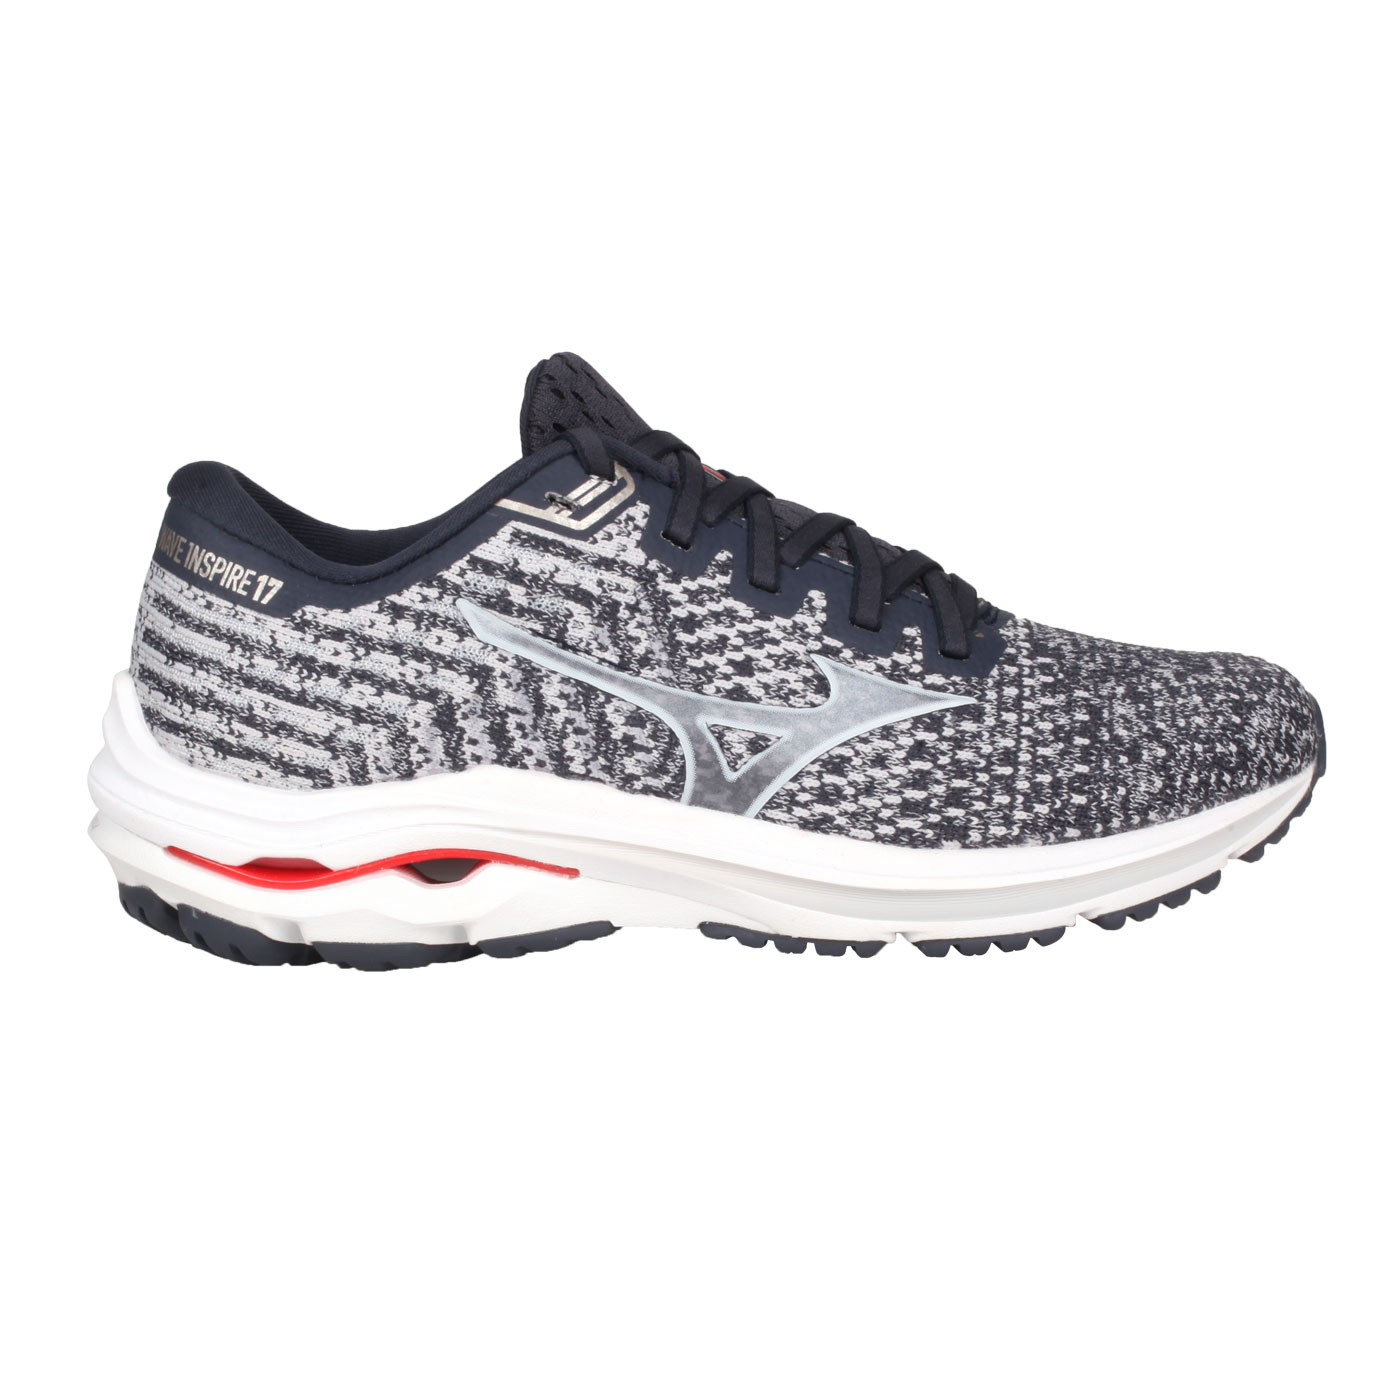 MIZUNO 女款慢跑鞋-WIDE  @WAVE INSPIRE 17WAVEKNIT WIDE@J1GD212959